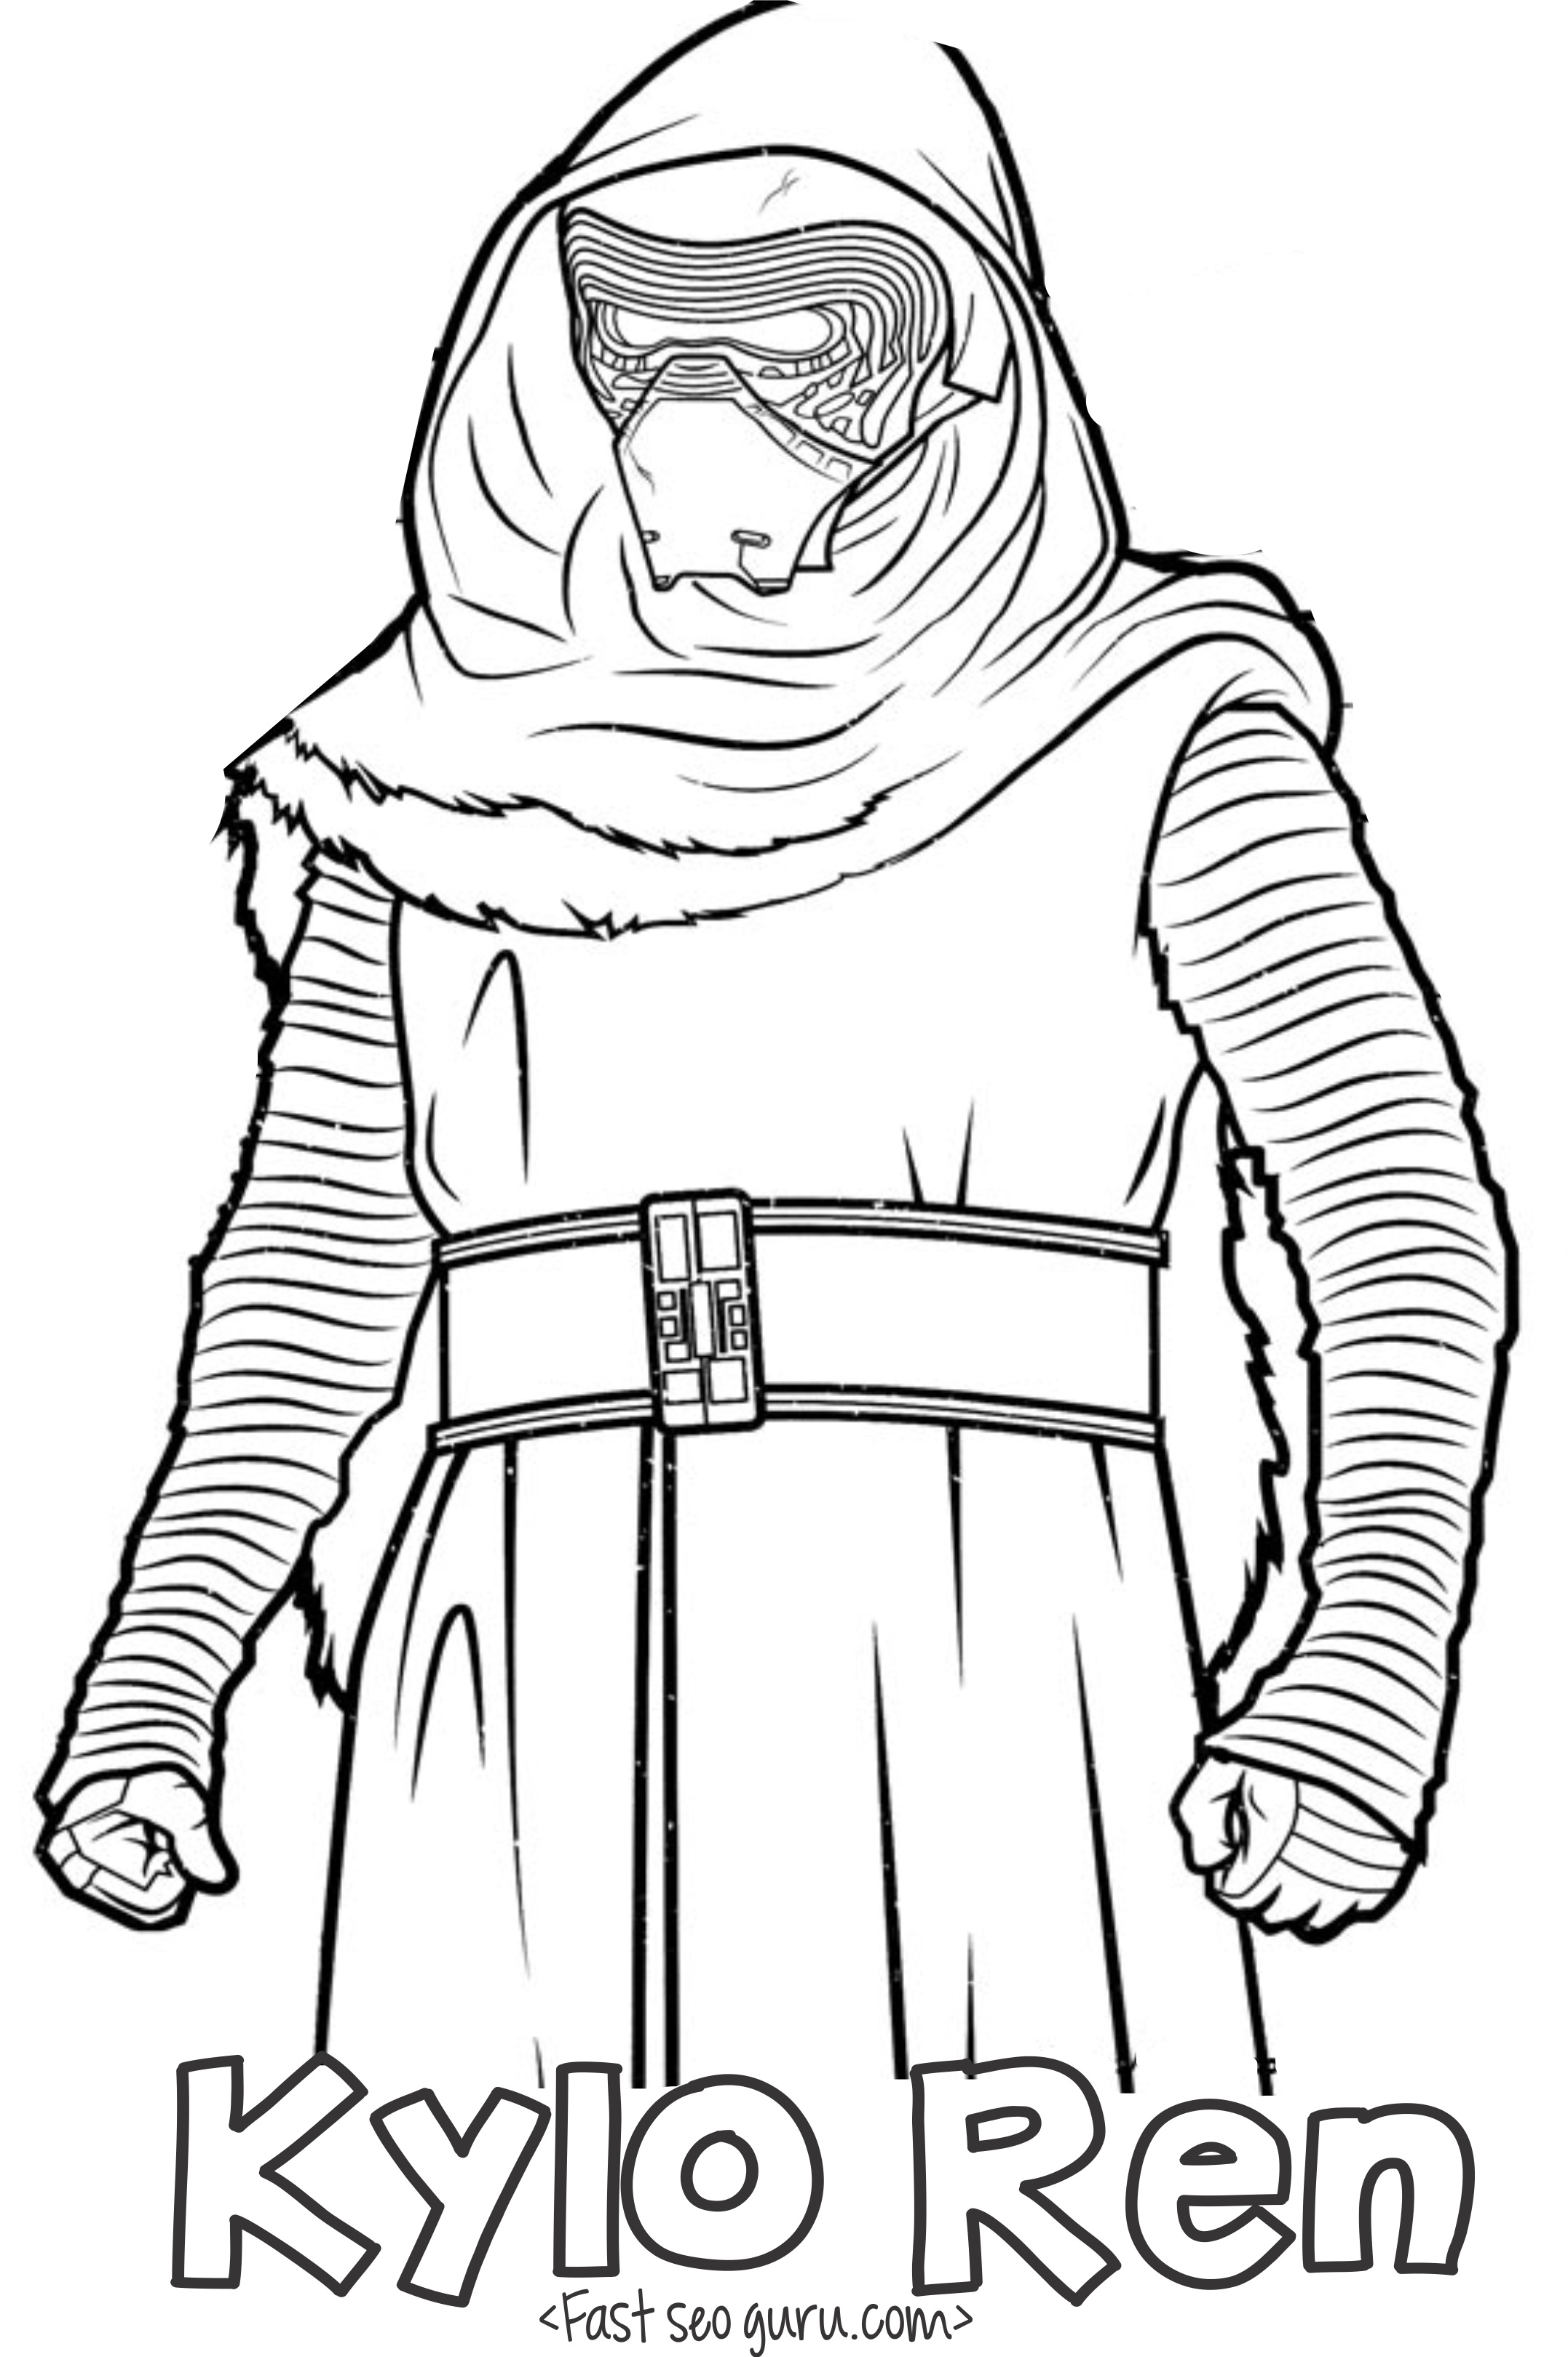 Kylo Ren Coloring Pages Coloring